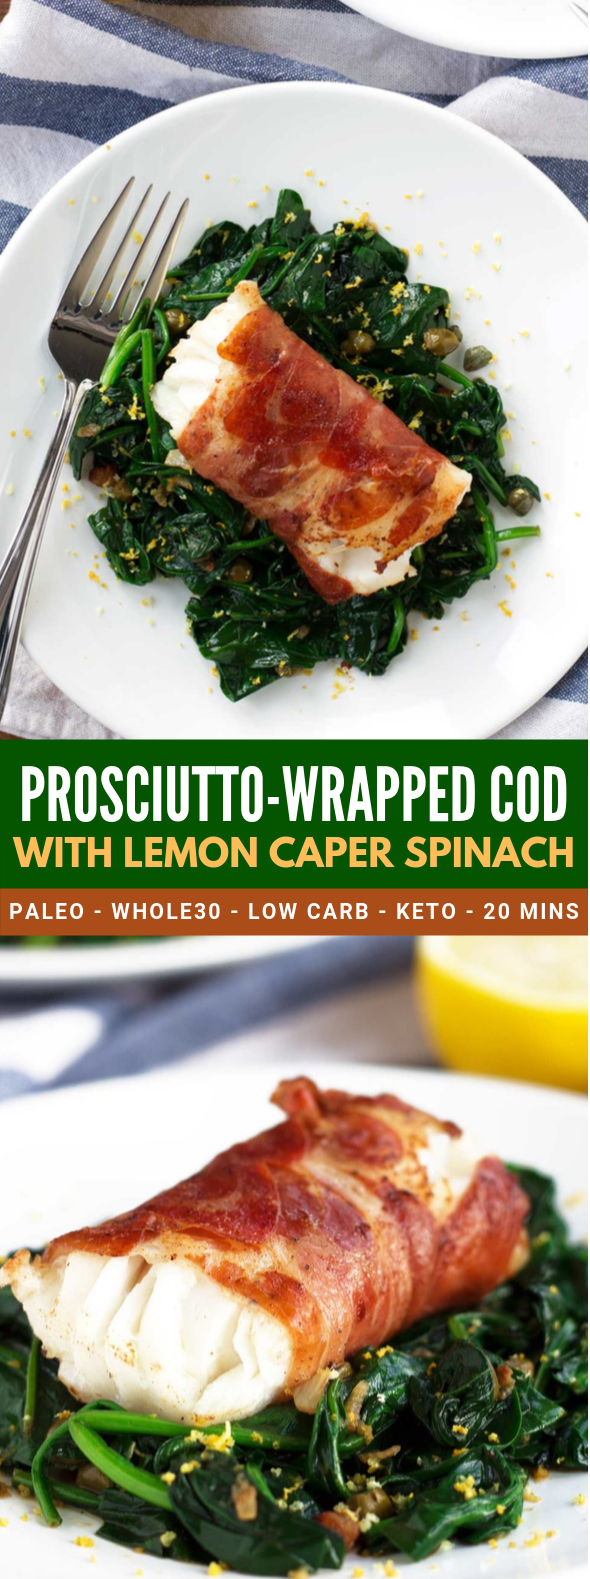 PROSCIUTTO-WRAPPED COD WITH LEMON CAPER SPINACH #lowcarb #ketodiet